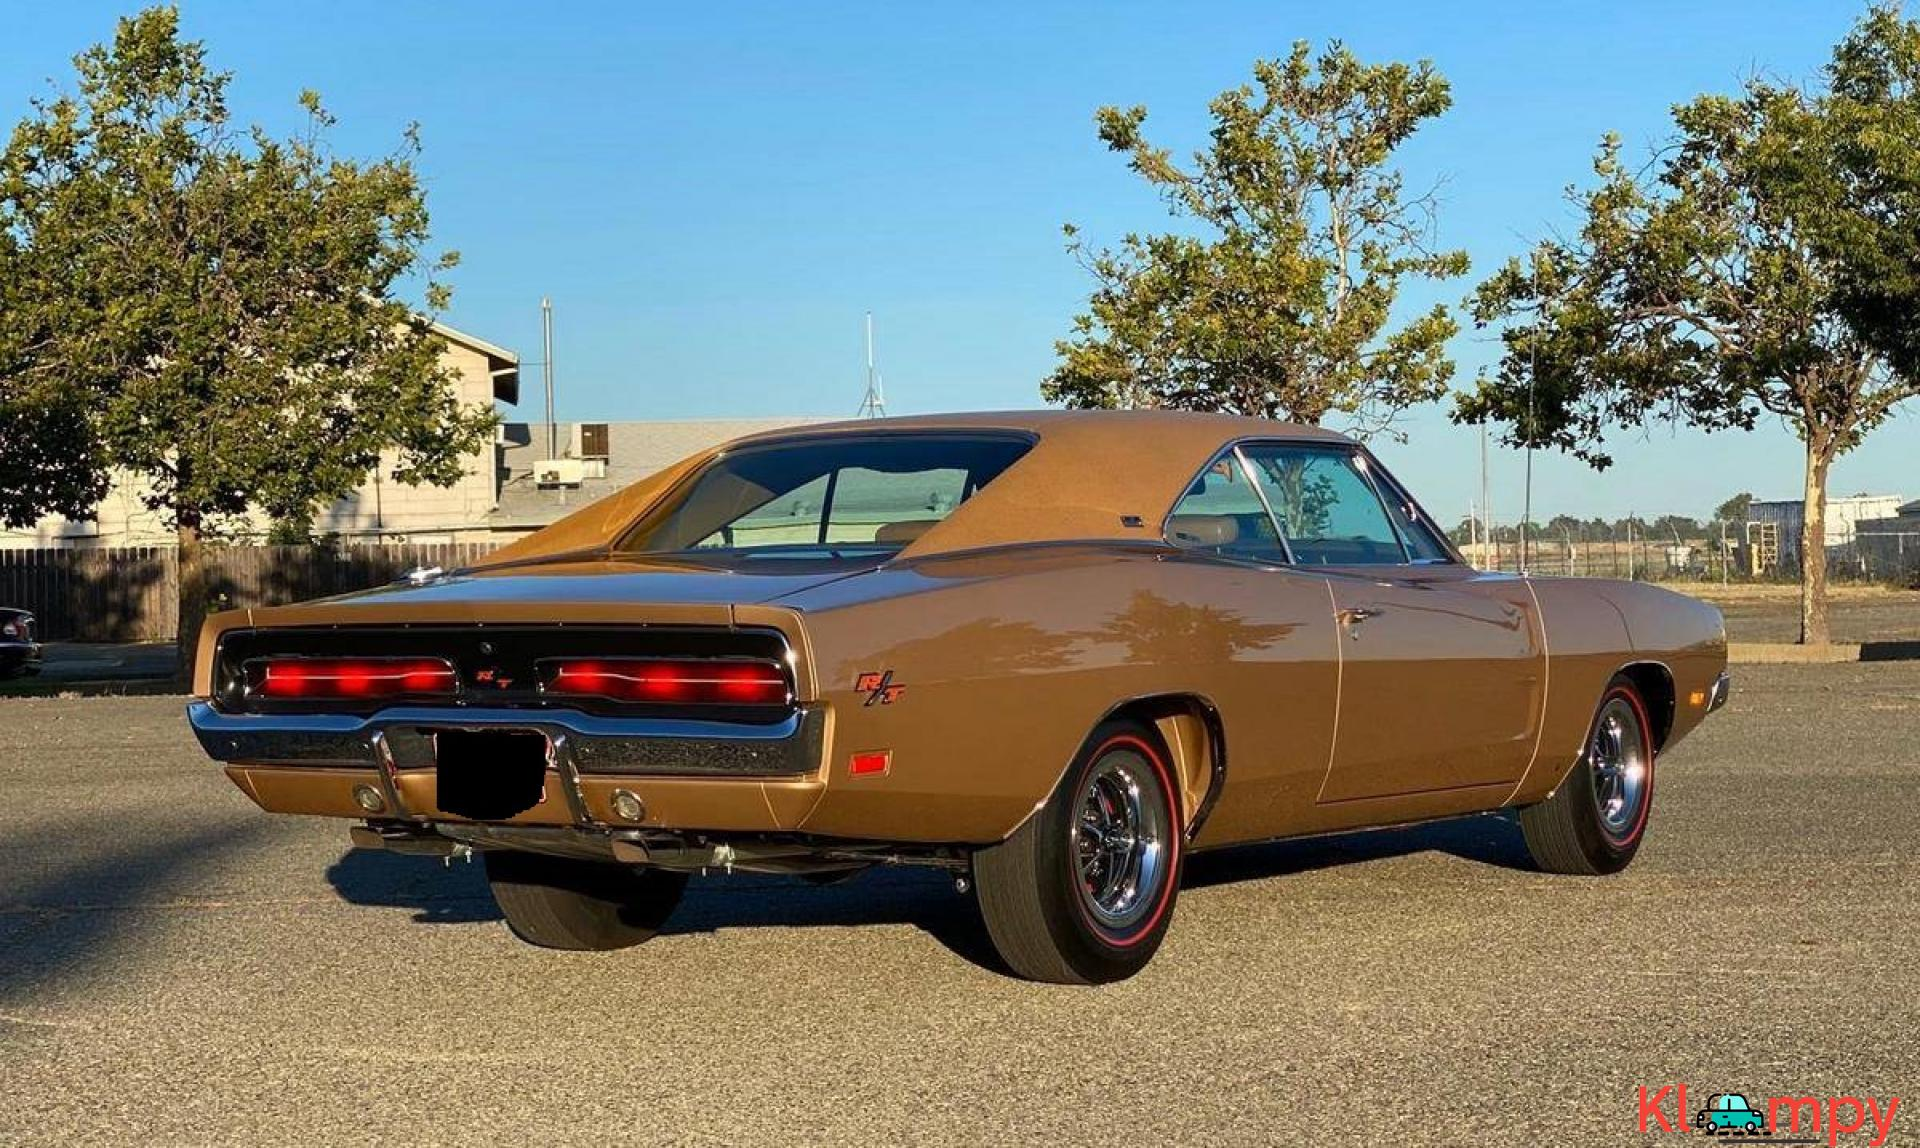 1969 Dodge Charger RT SE 440 375hp High Performance - 7/20